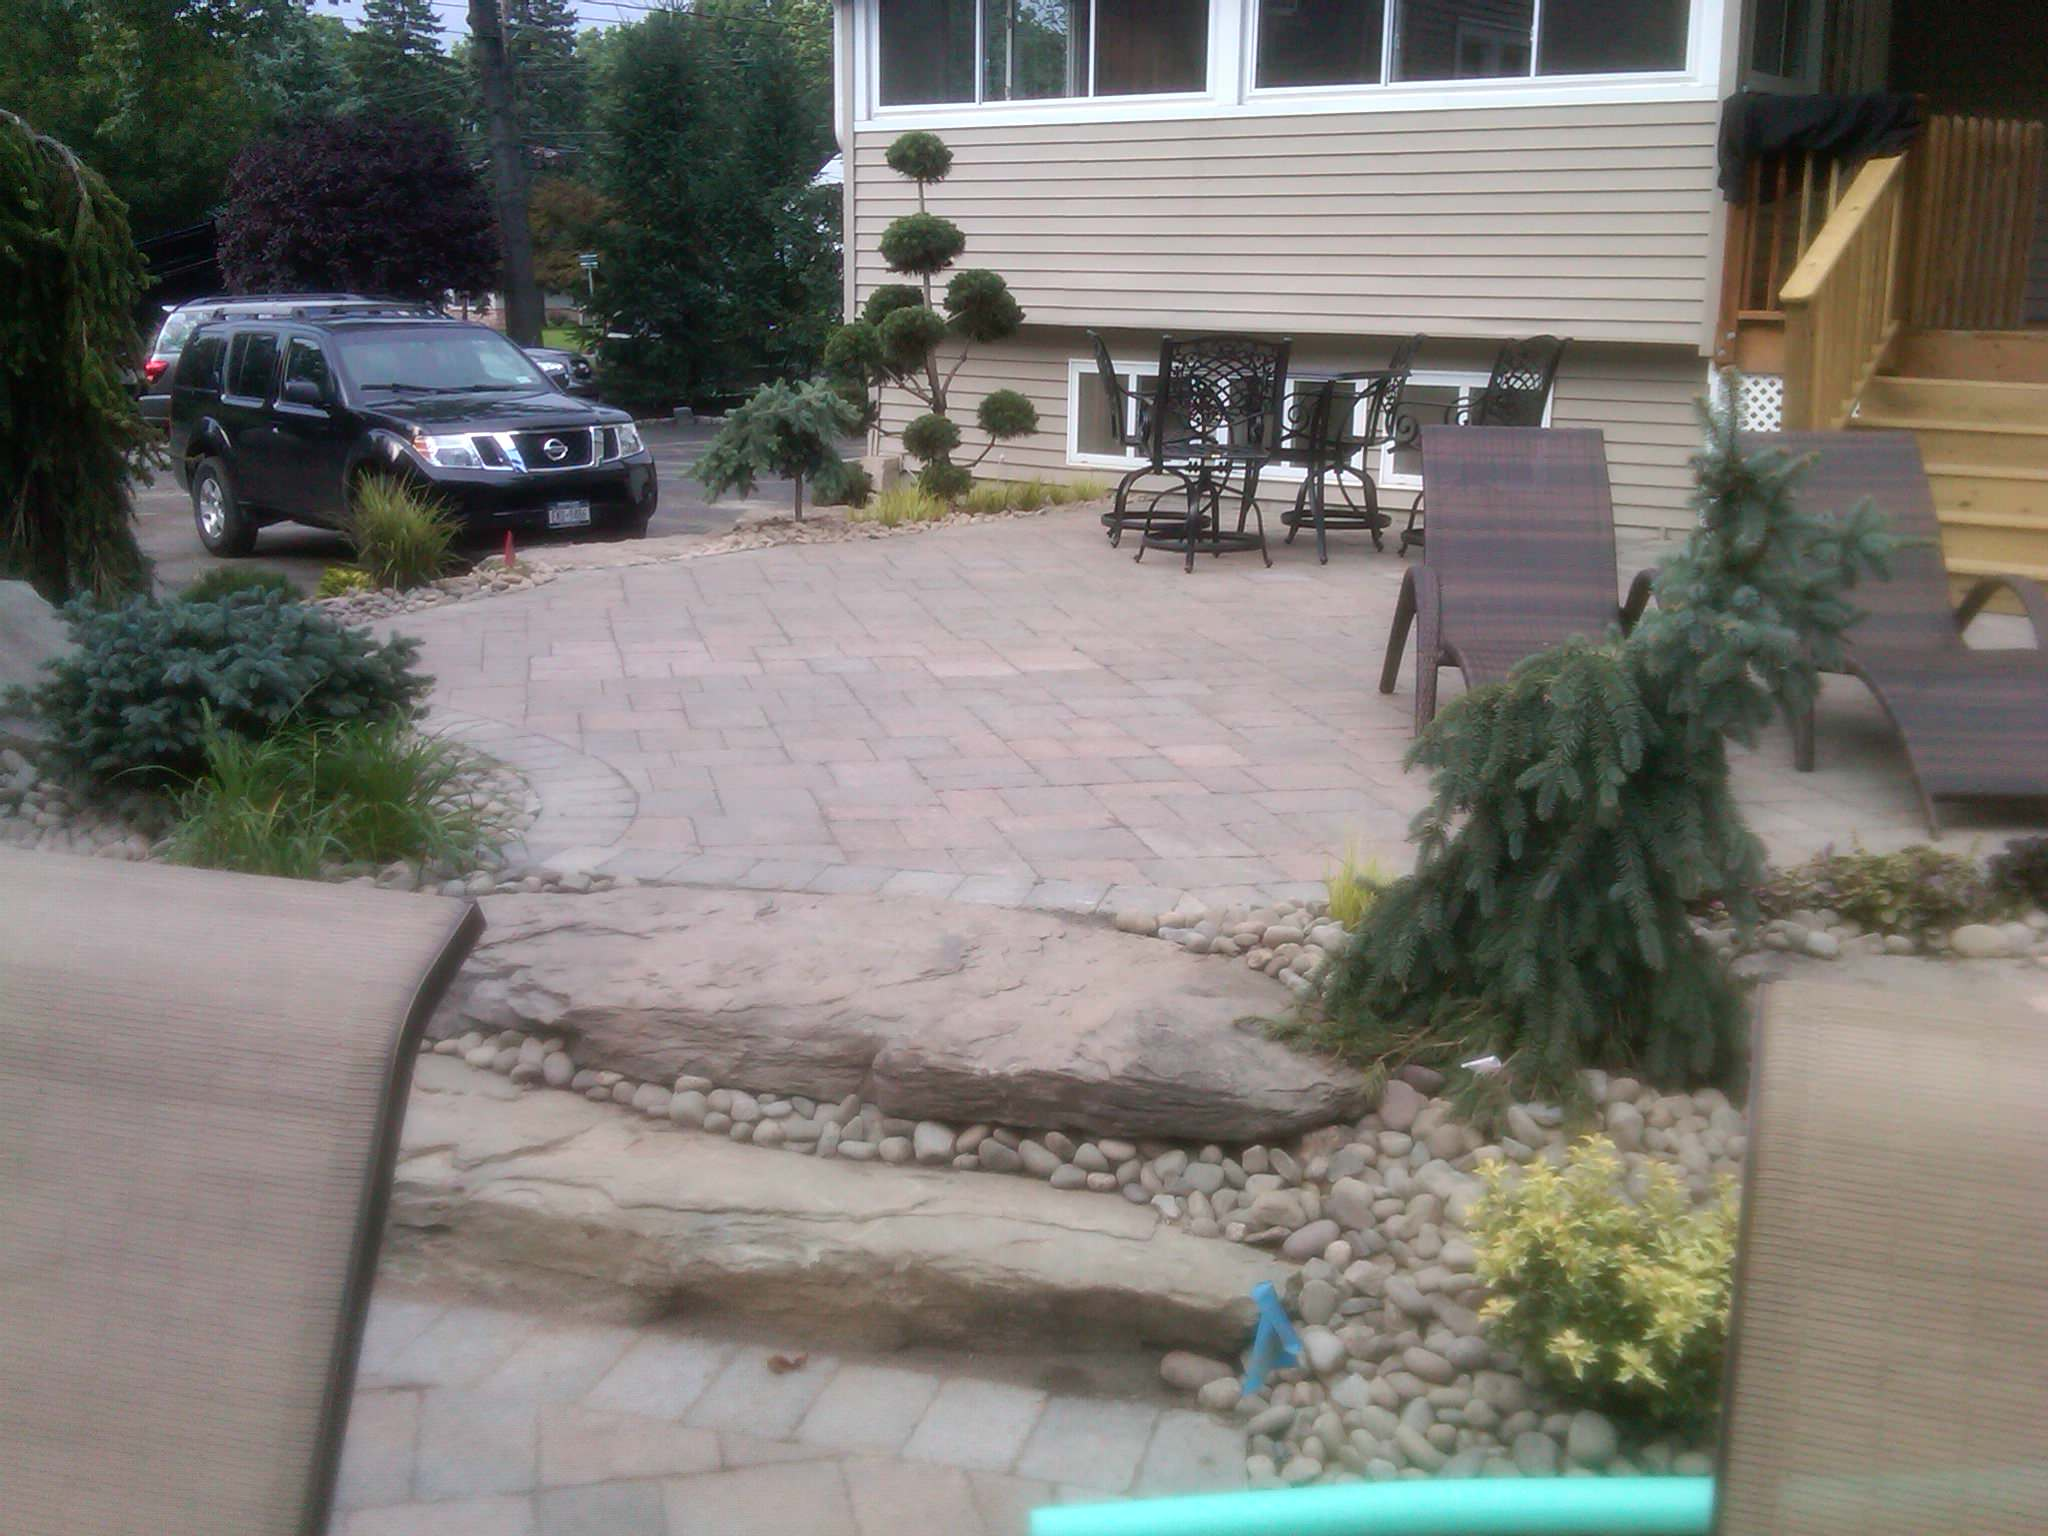 backyard landscape 'firepit''waterfall'tiered patio's pool with bluestone coping